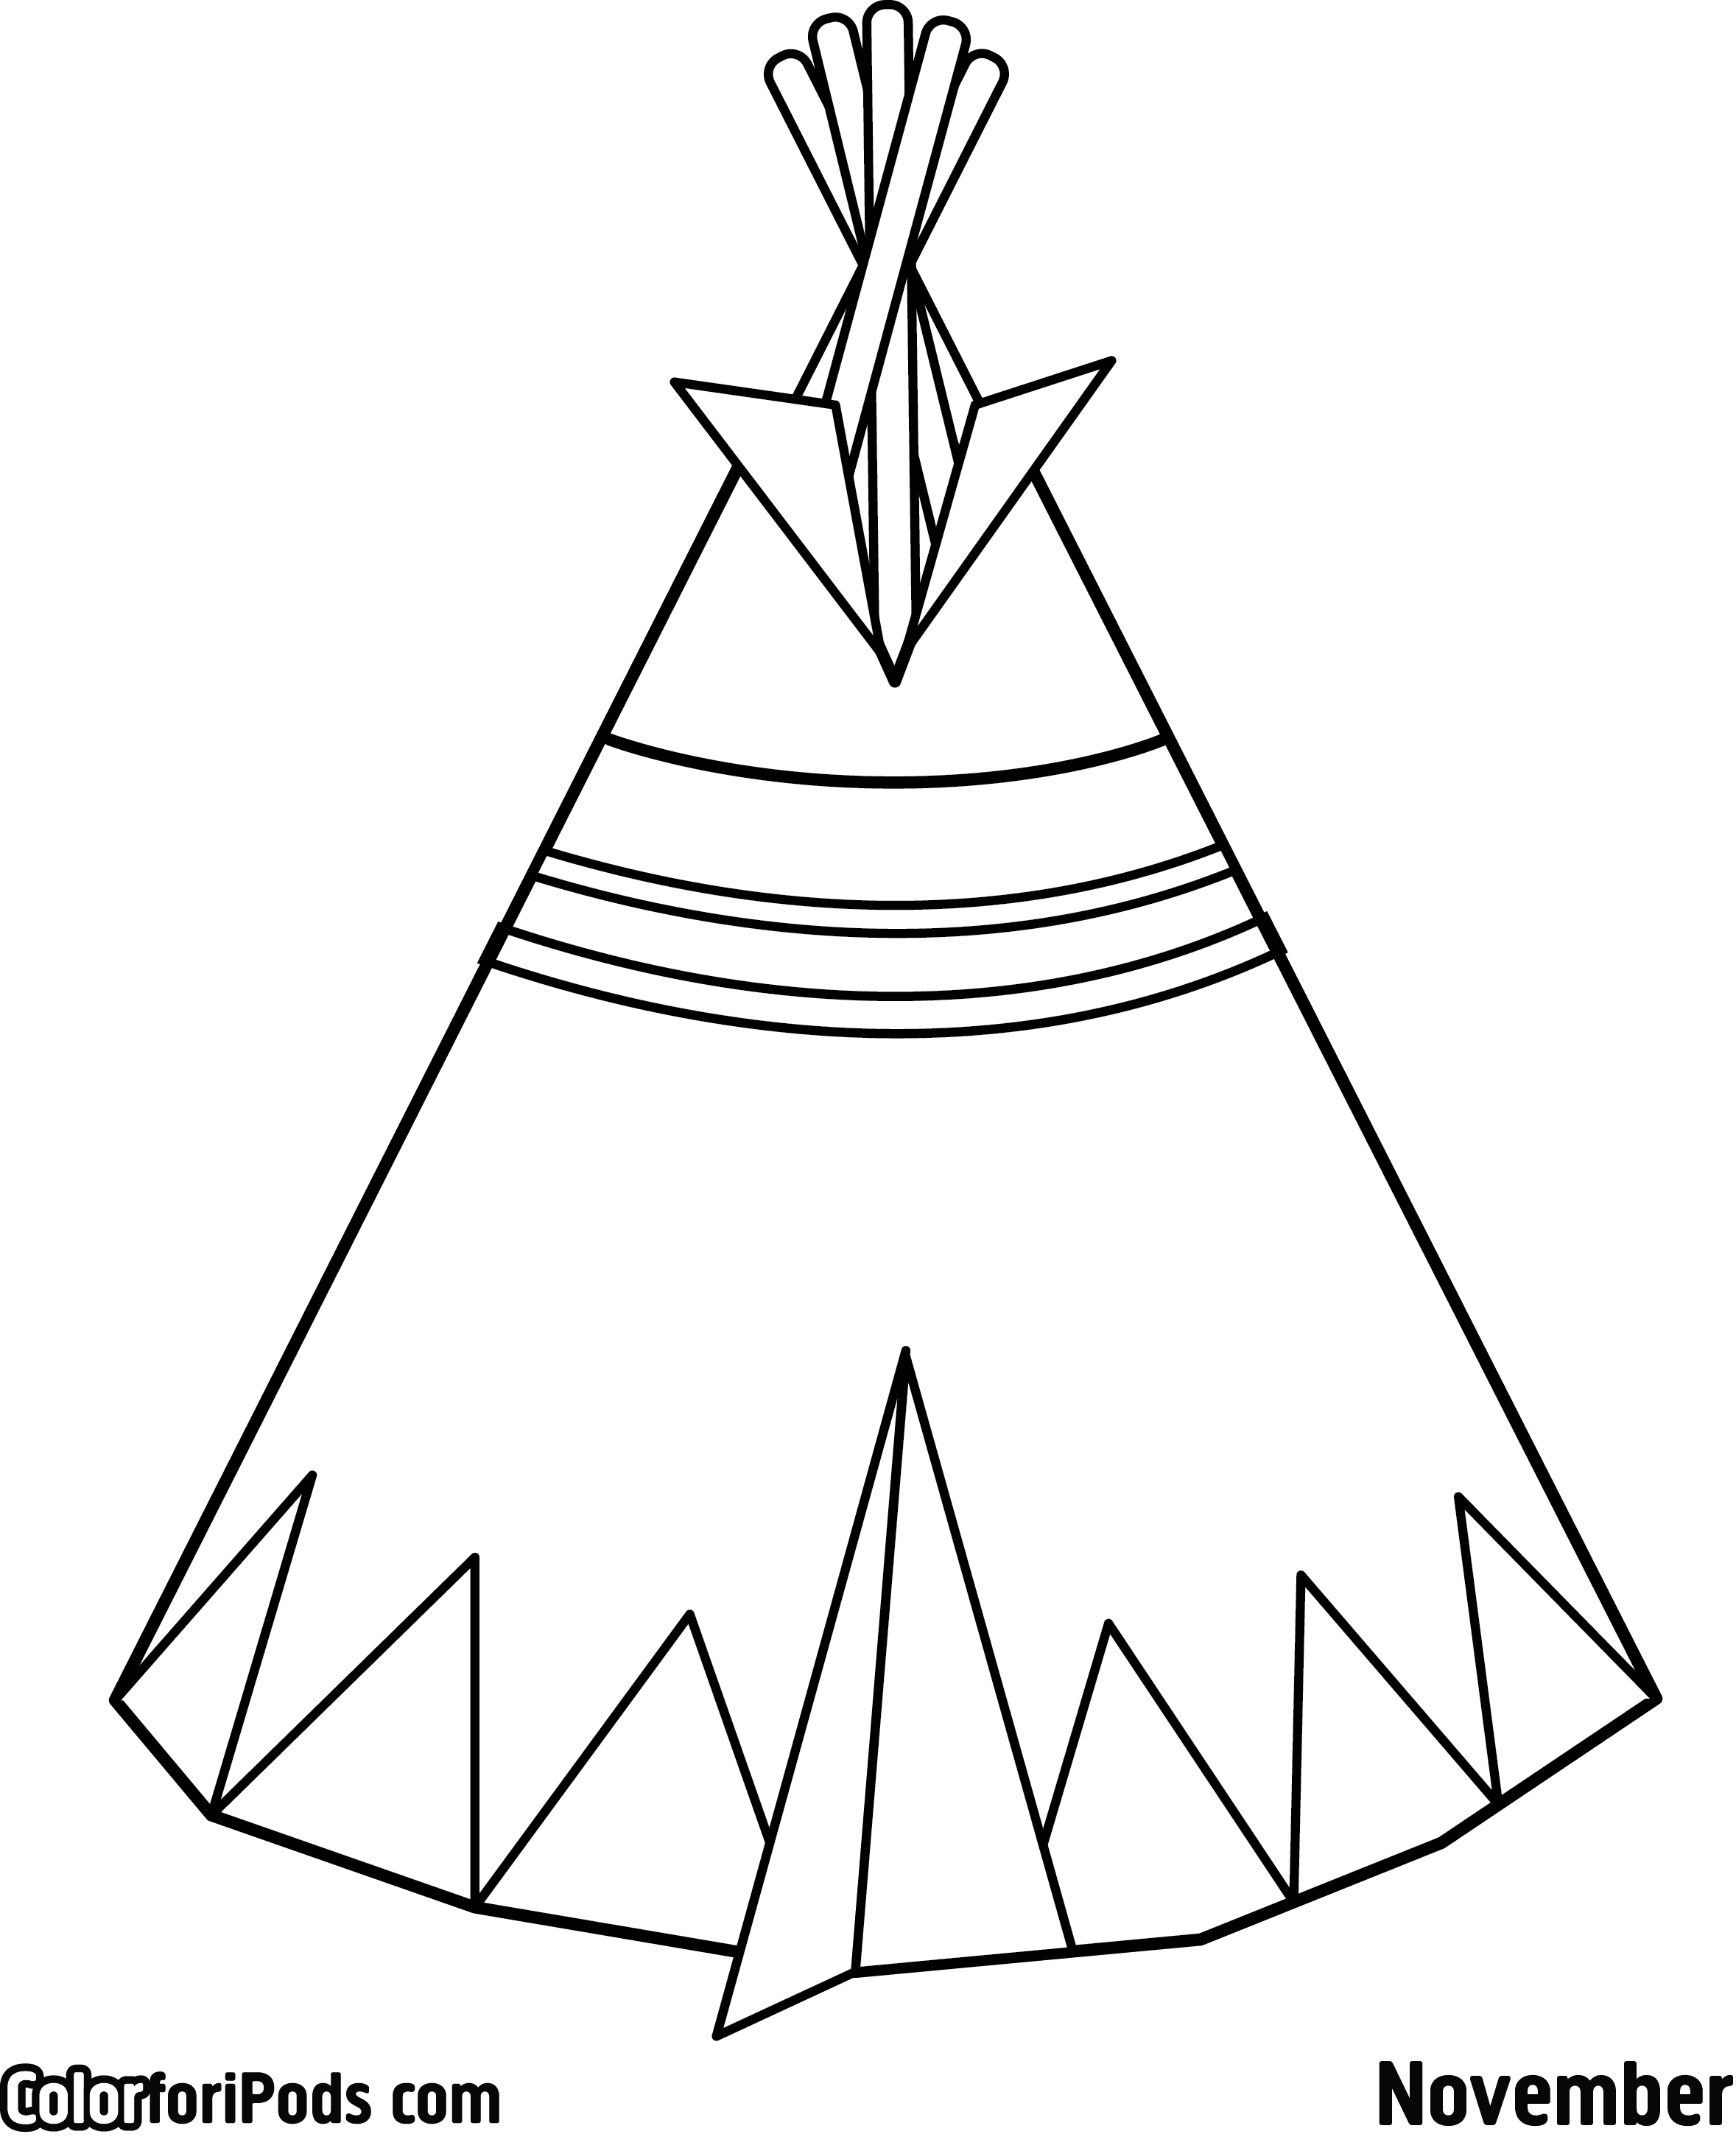 teepee craft template - teepee drawing at free for personal use